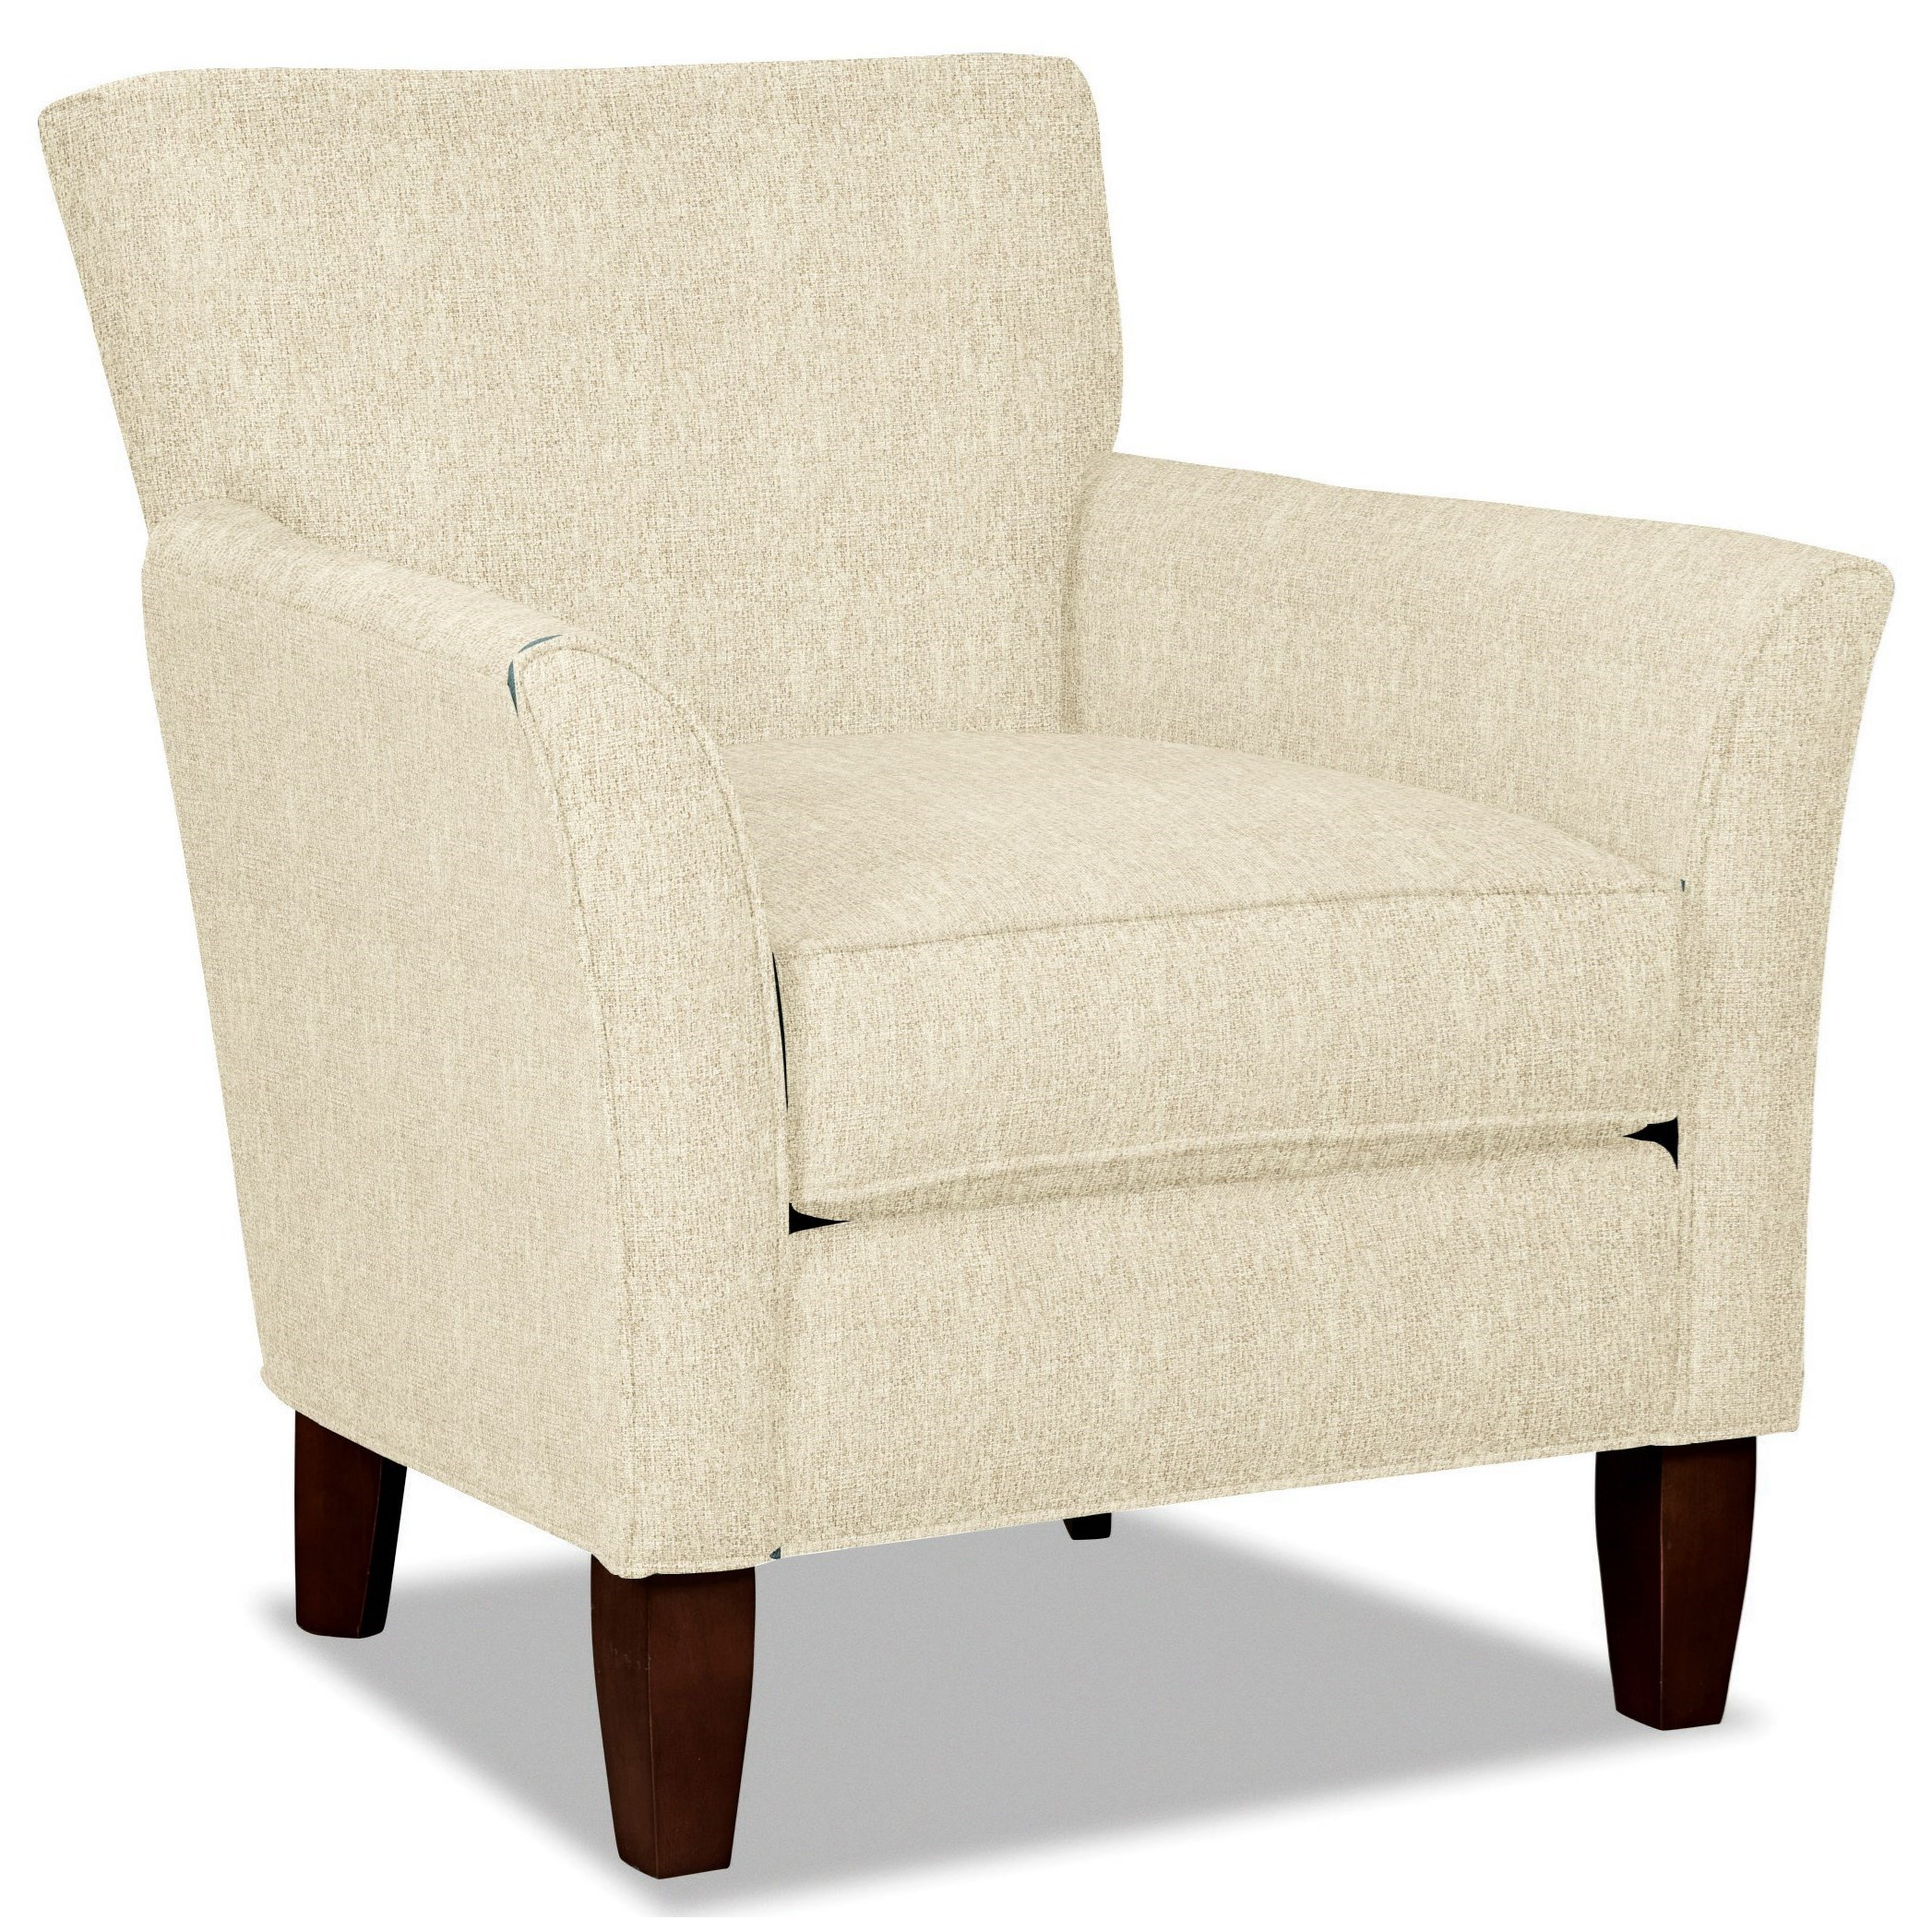 Craftmaster 060110 Accent Chair - Item Number: 060110-BAHAMA-31